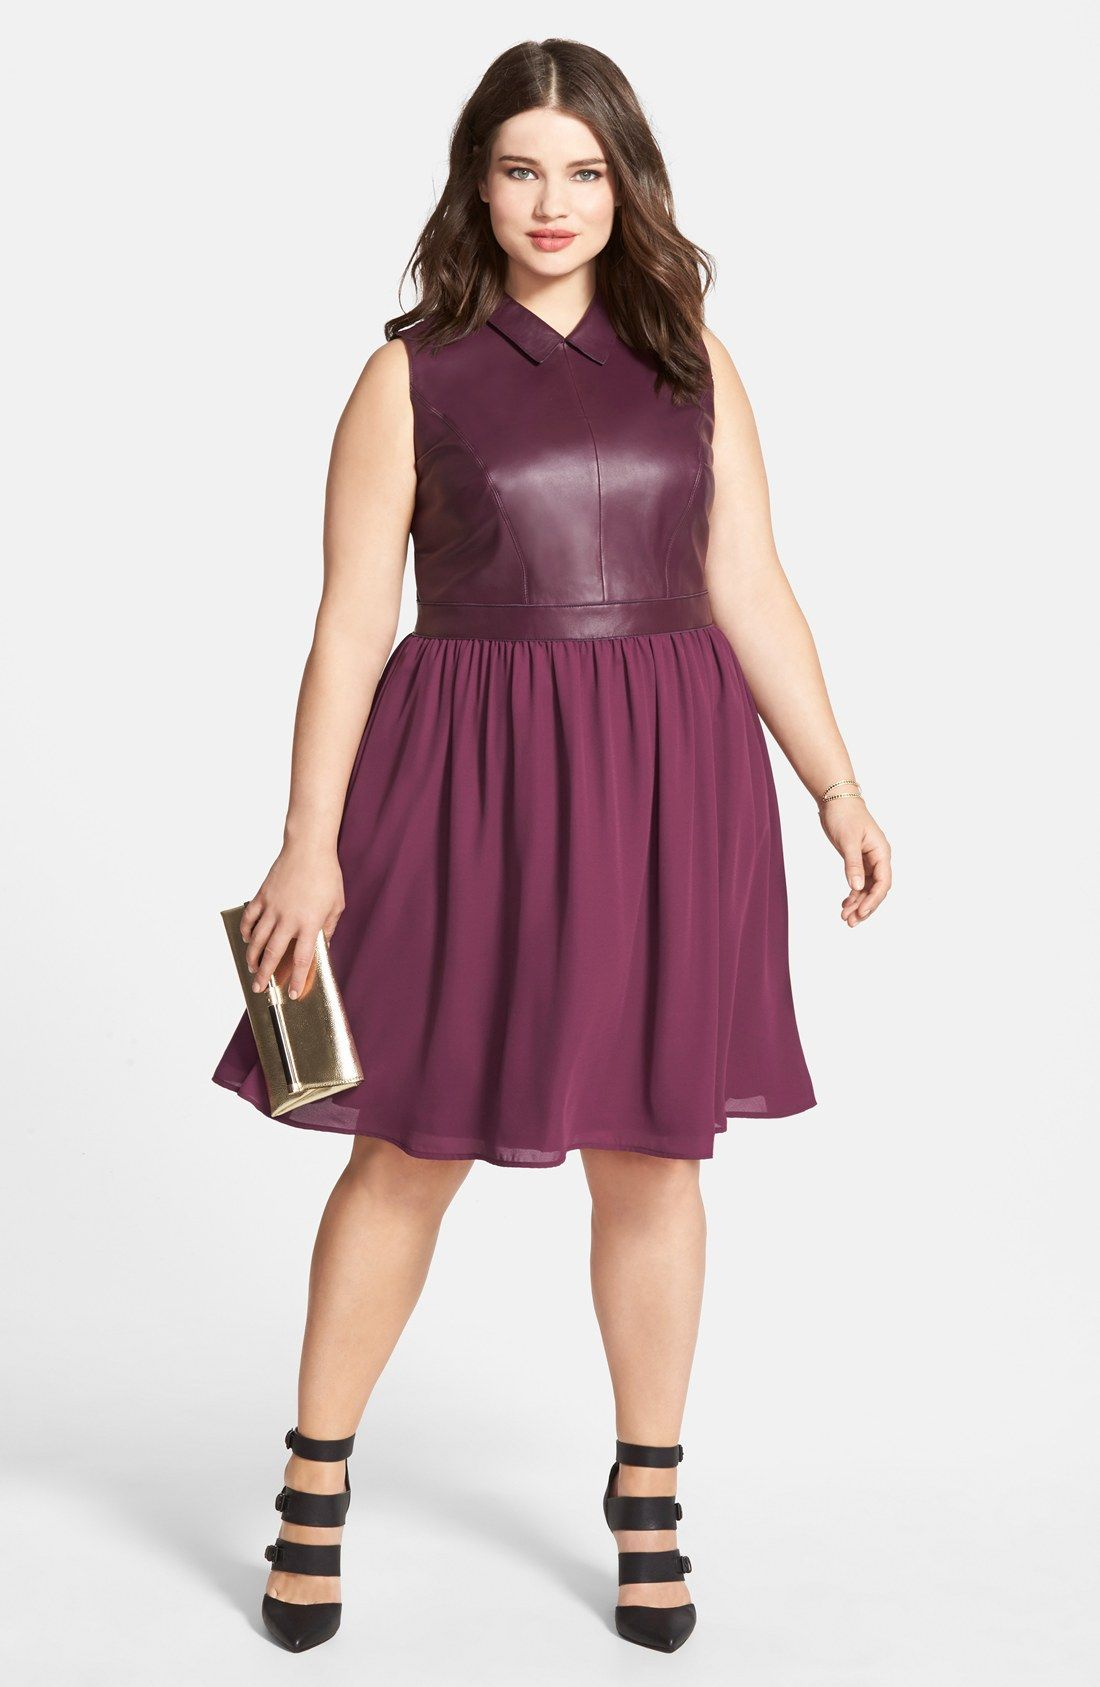 Sejour Fit & Flare Dress & Accessories Plus Size I ve never really